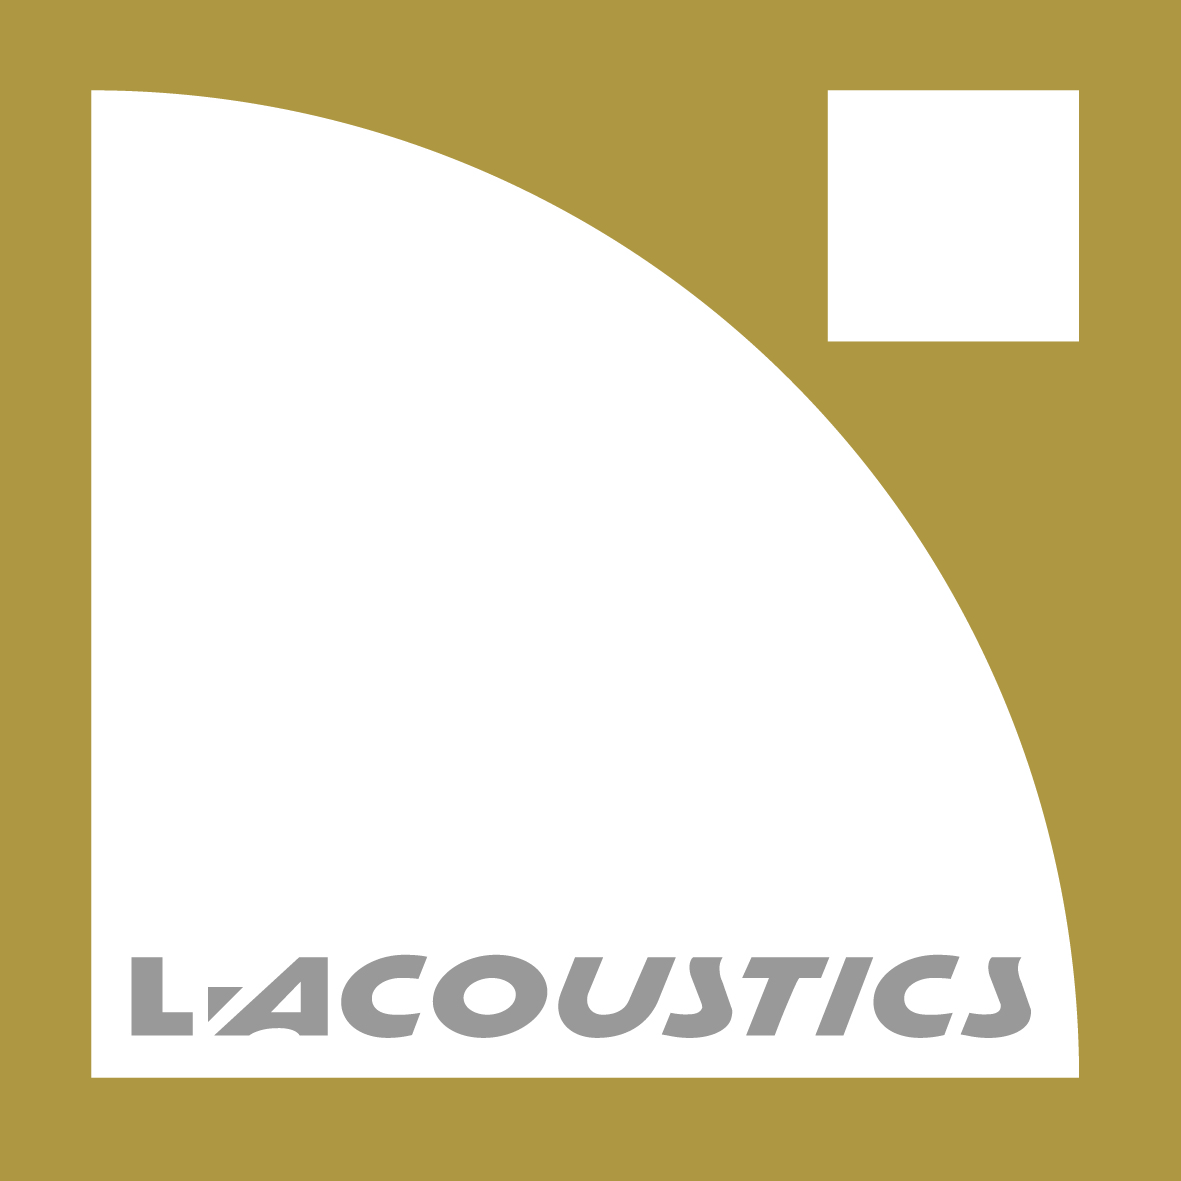 L-ACOUSTICS_LOGO_CO_CMJN.jpg